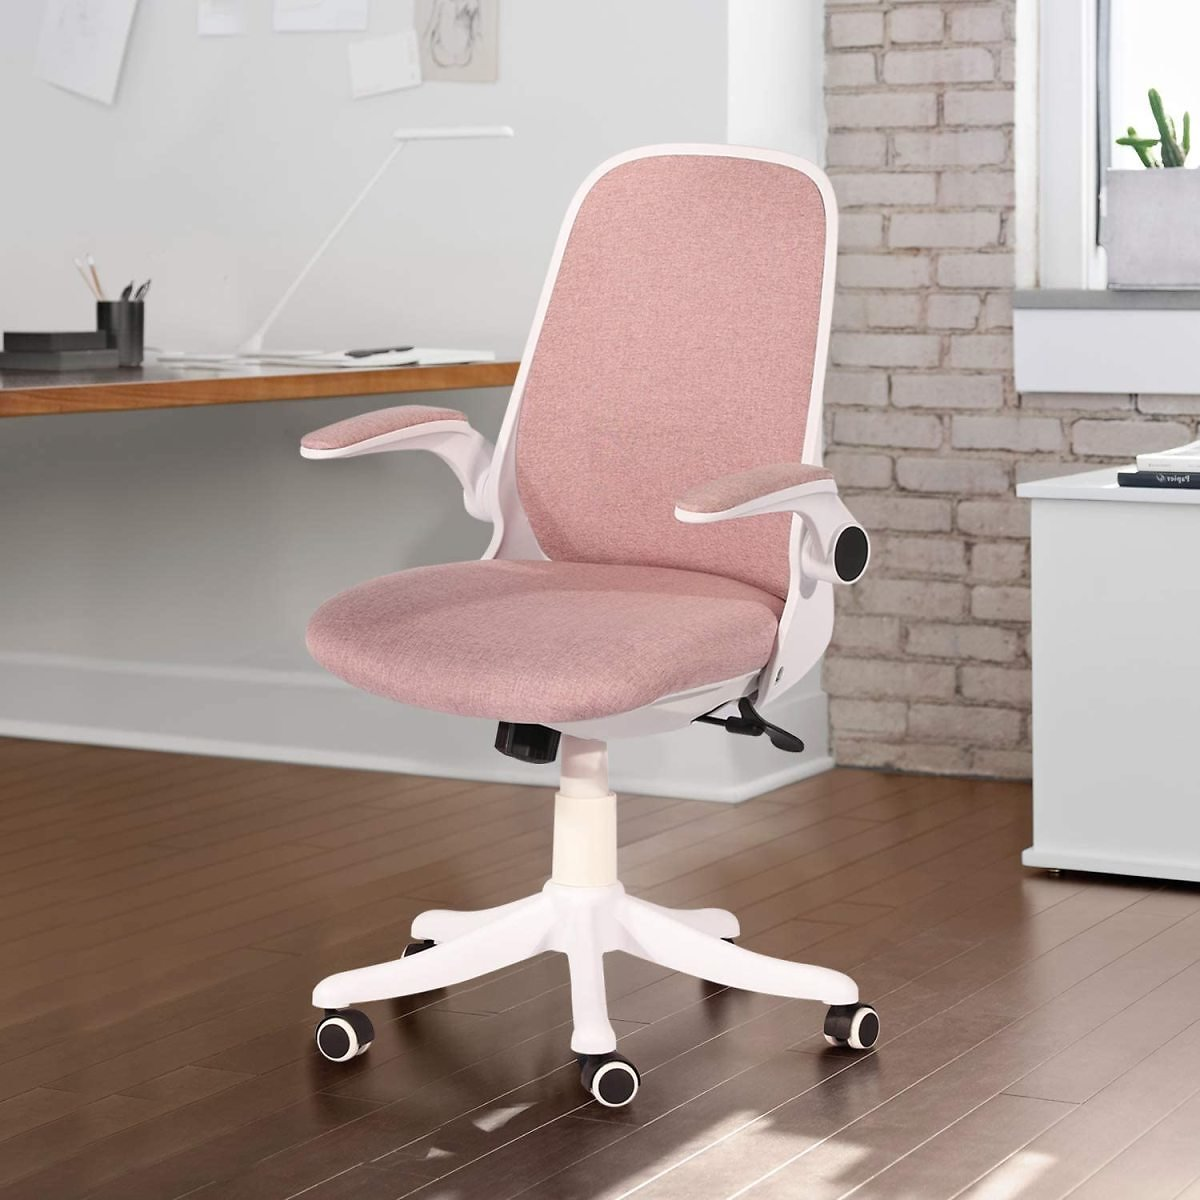 VECELO Home Office Chair with Flip-up Arms and Adjustable Height for Task/Desk Work, Pink